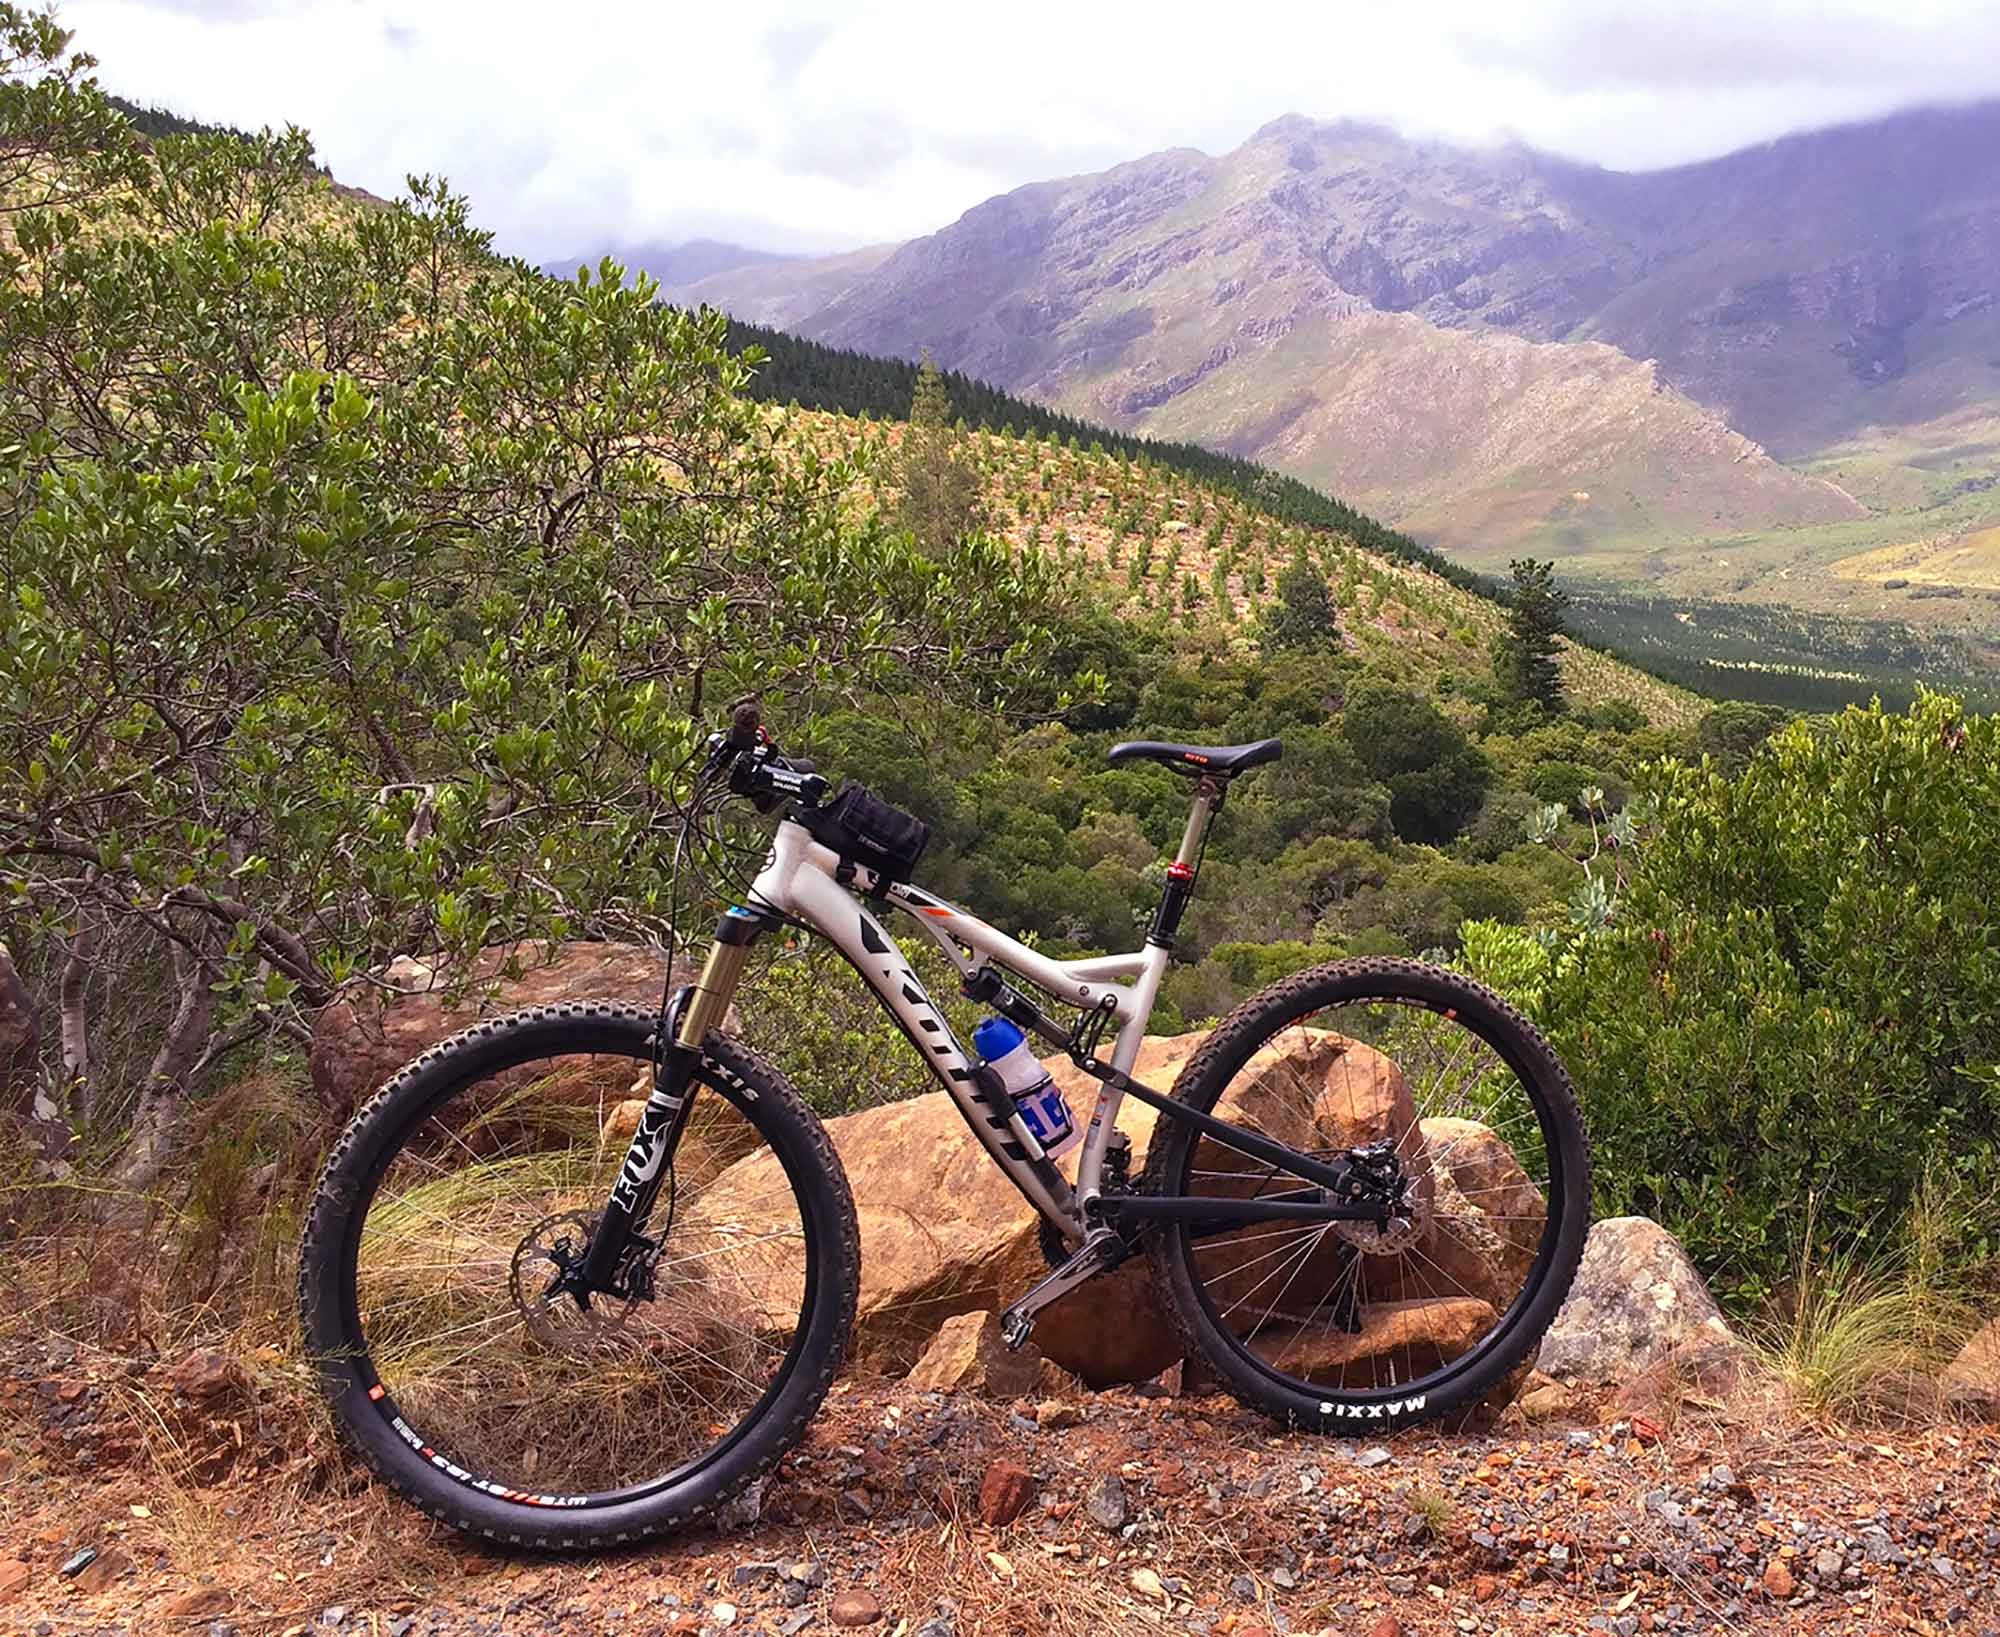 Test Riding the Kona Satori in South Africa